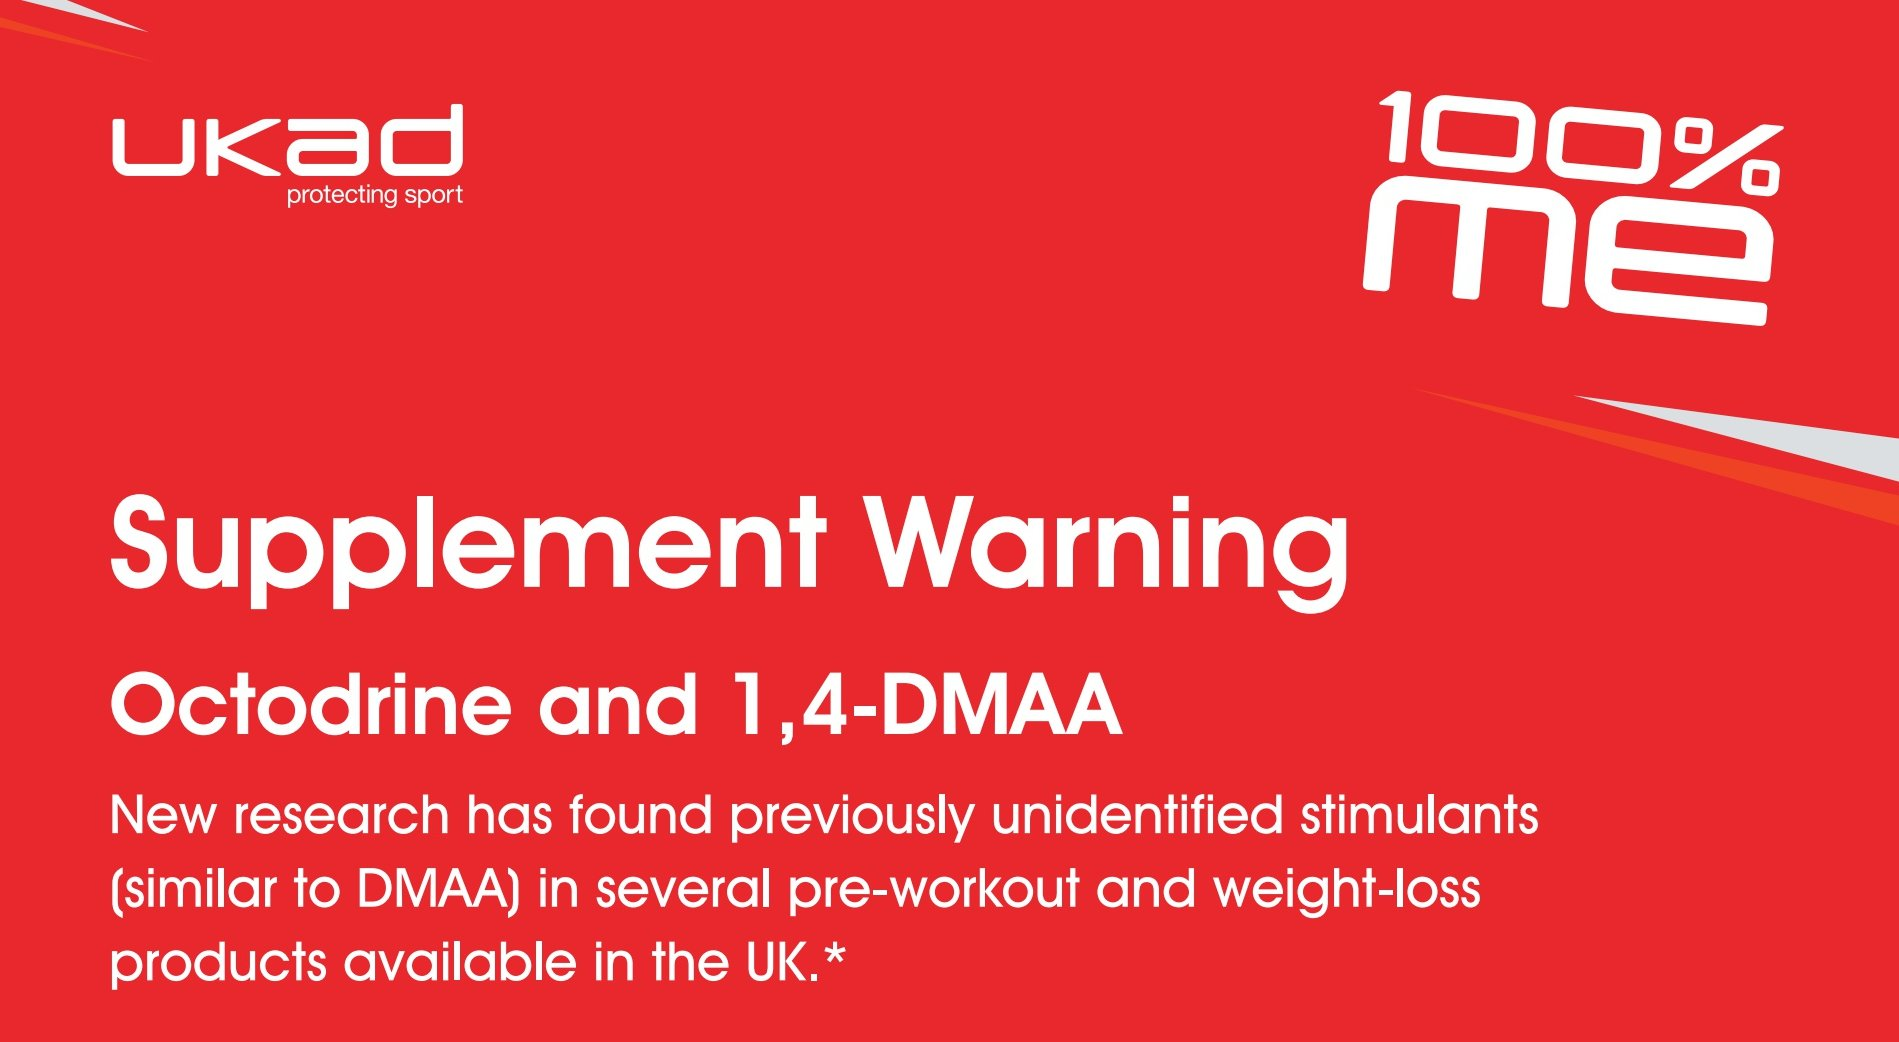 """UK Anti-Doping on Twitter: """"WARNING 